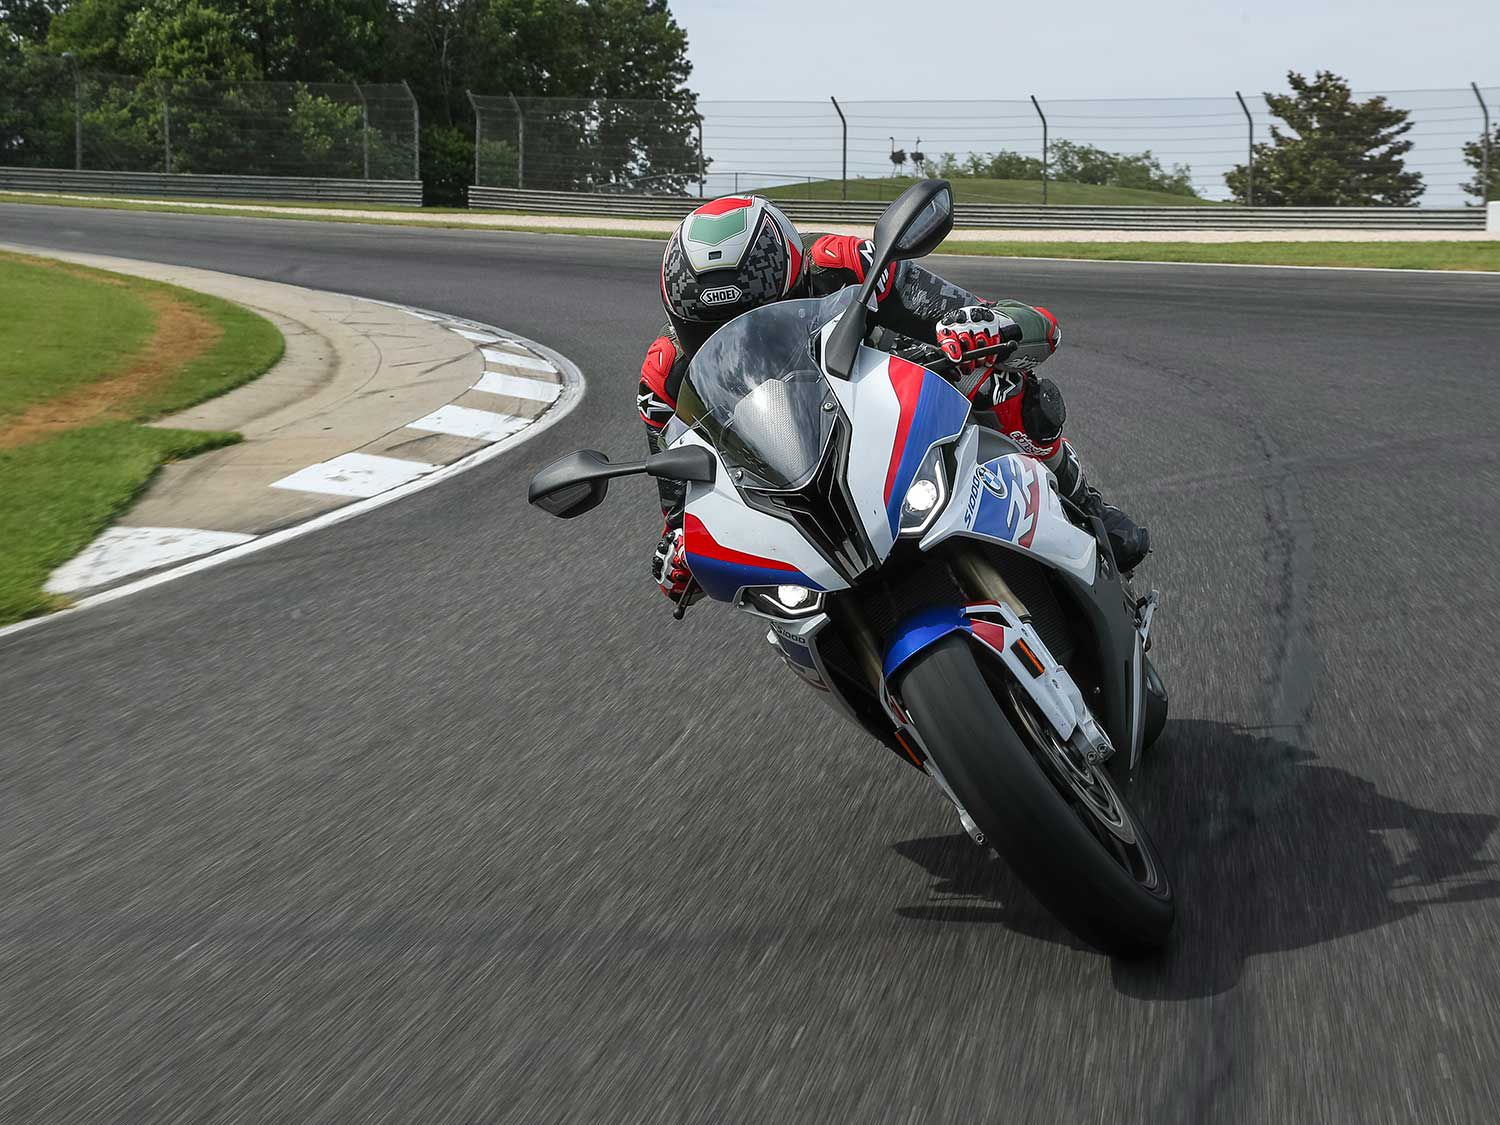 Known for its hard-edged performance, BMW offers a softer and more versatile S 1000 RR for 2020.